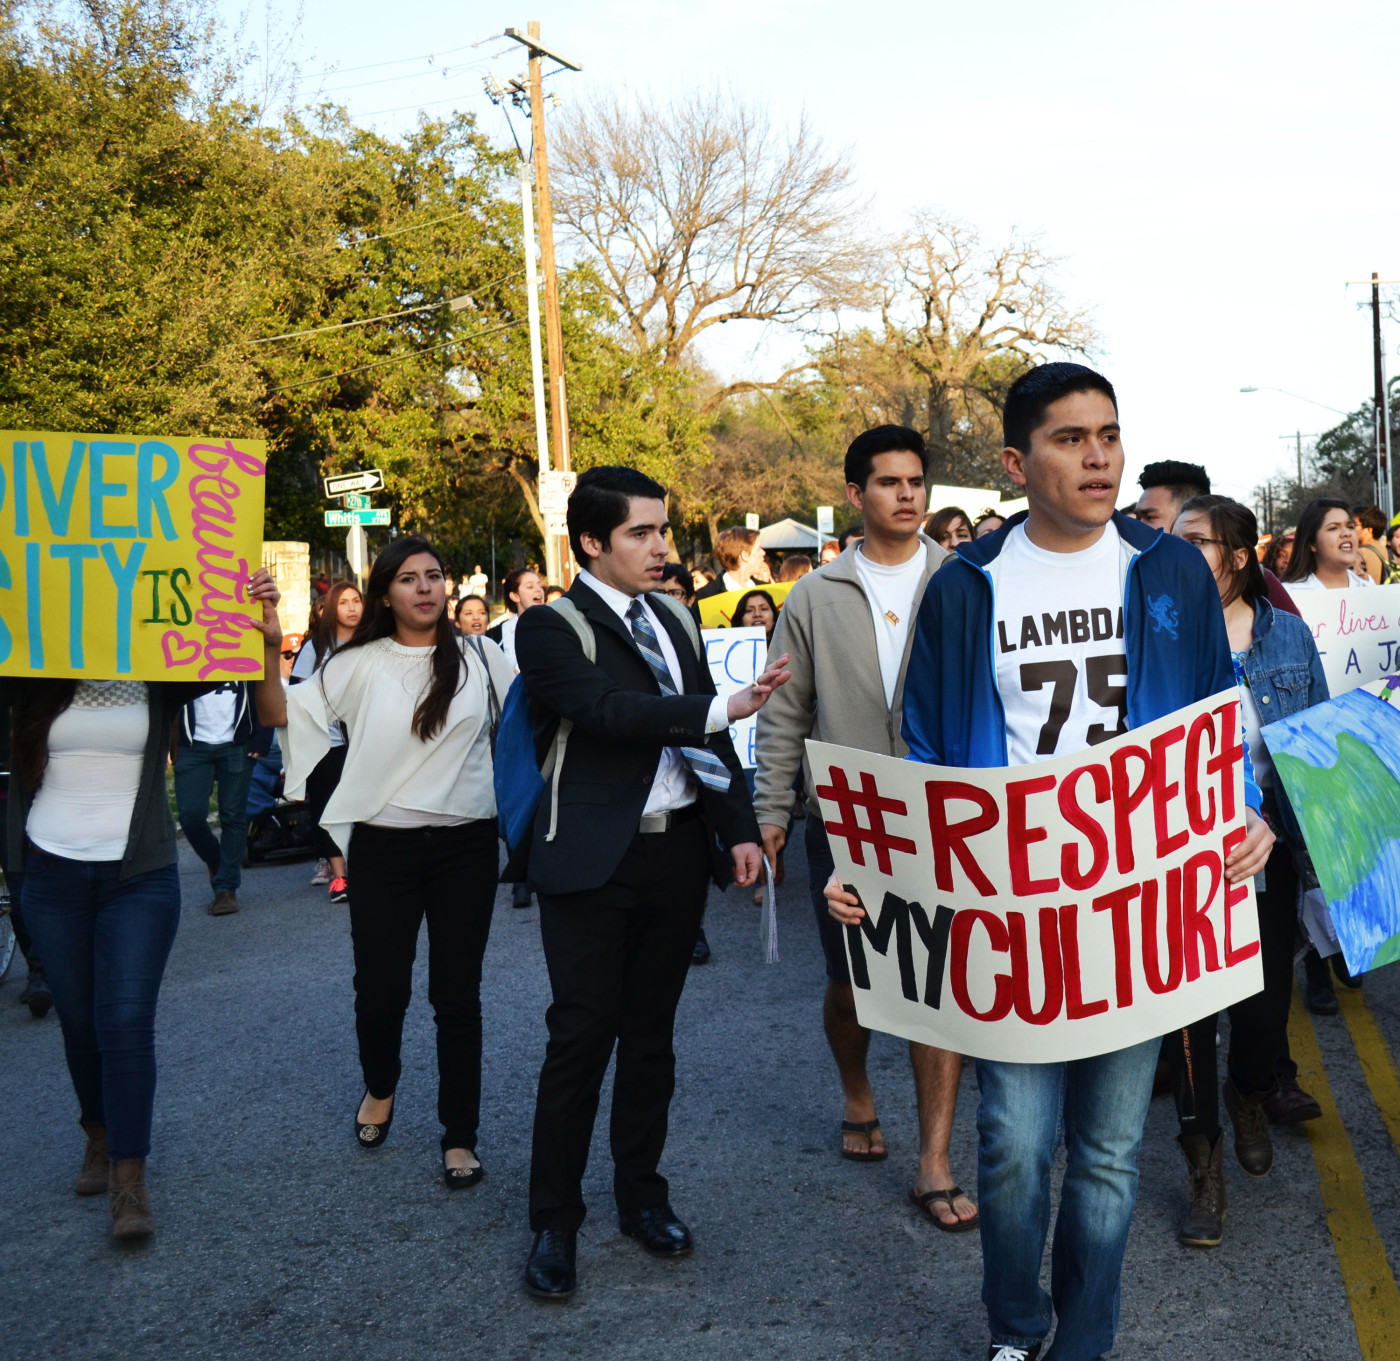 Edwin Hurtado, fourth year government, helps lead the United Against Racism March in Austin, Texas on February 12, 2015. He is an officer in UT Latinos and participated in the march by standing with his fellow officers during the rally and by chanting along with the crowd during the protest.